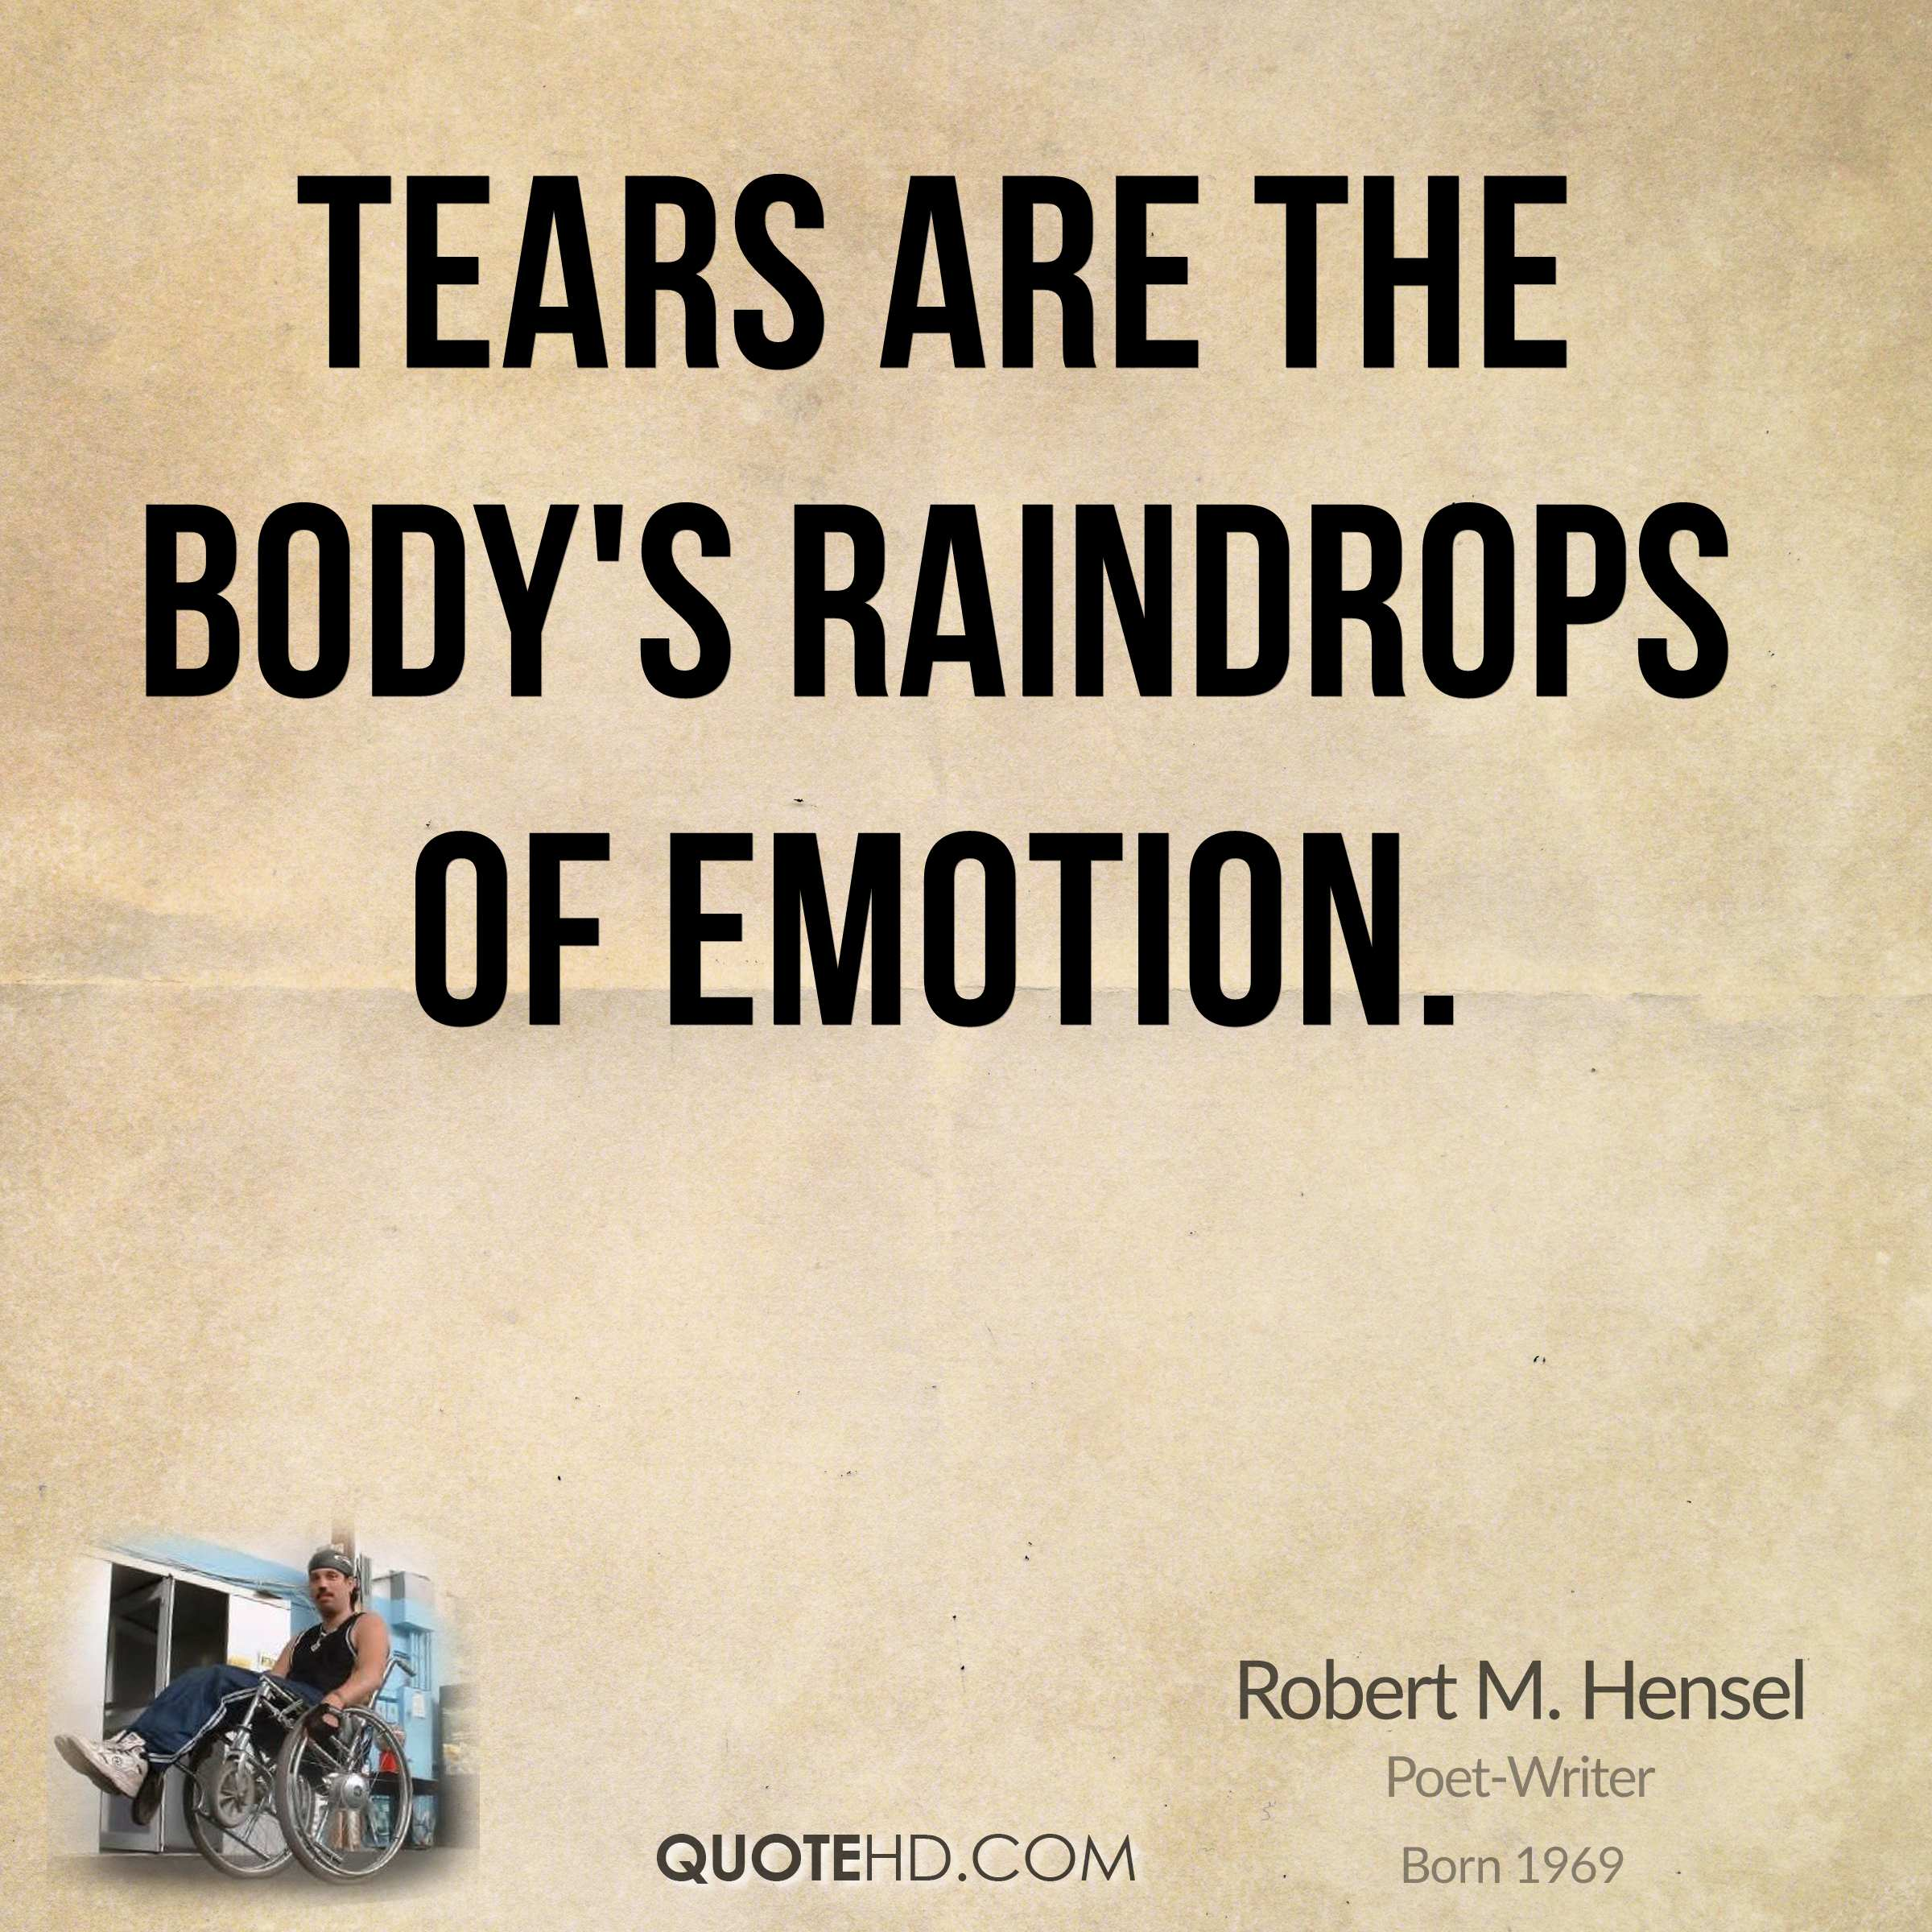 Tears are the body's raindrops of emotion.